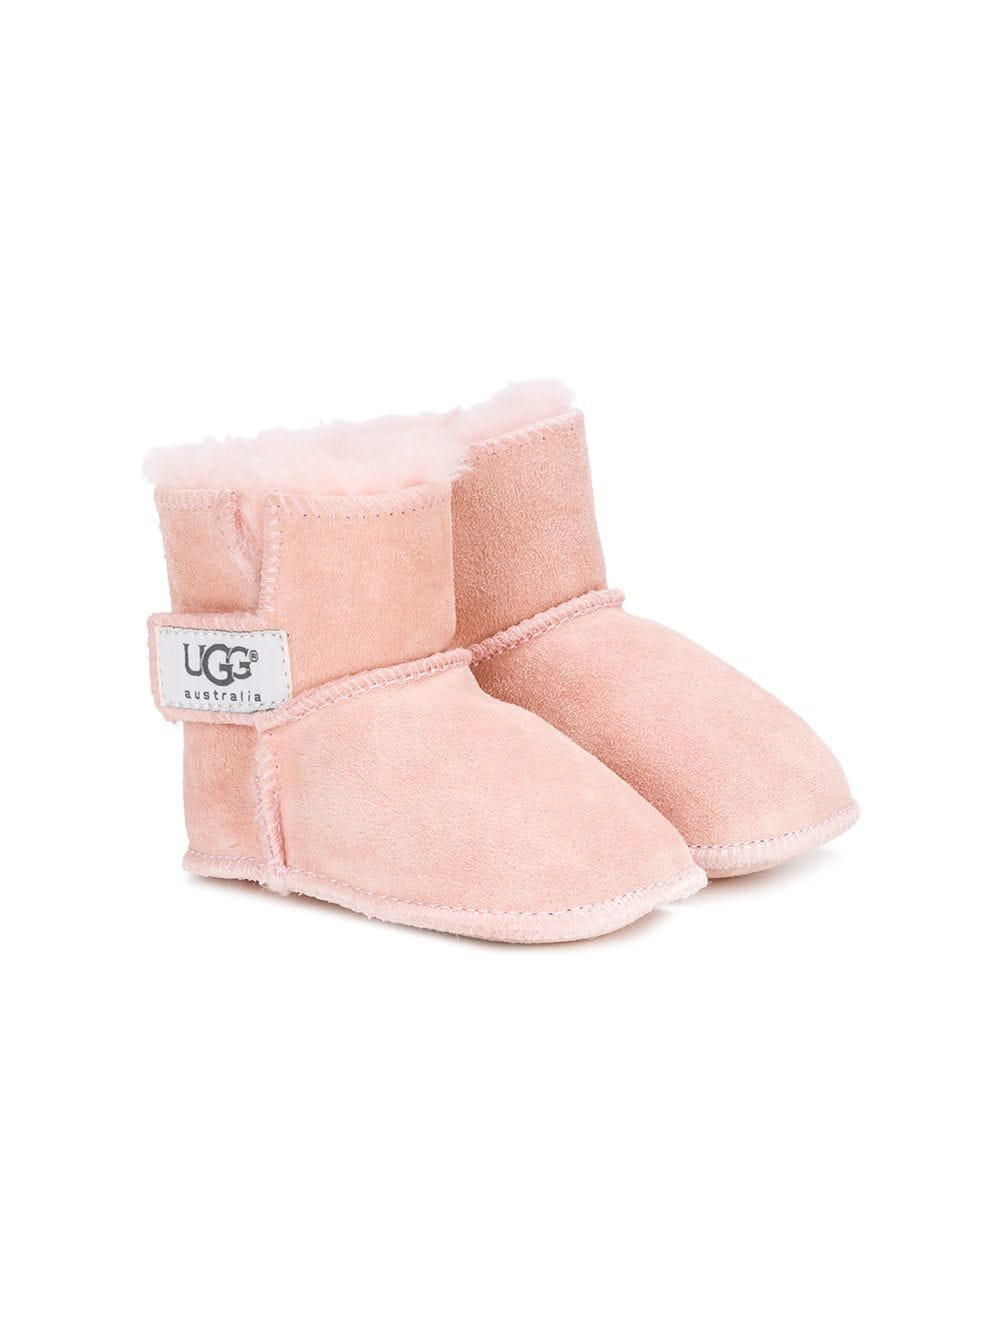 5e2c6fcba10 Ugg Australia Kids Erin boots - Pink in 2019 | Products | Uggs ...